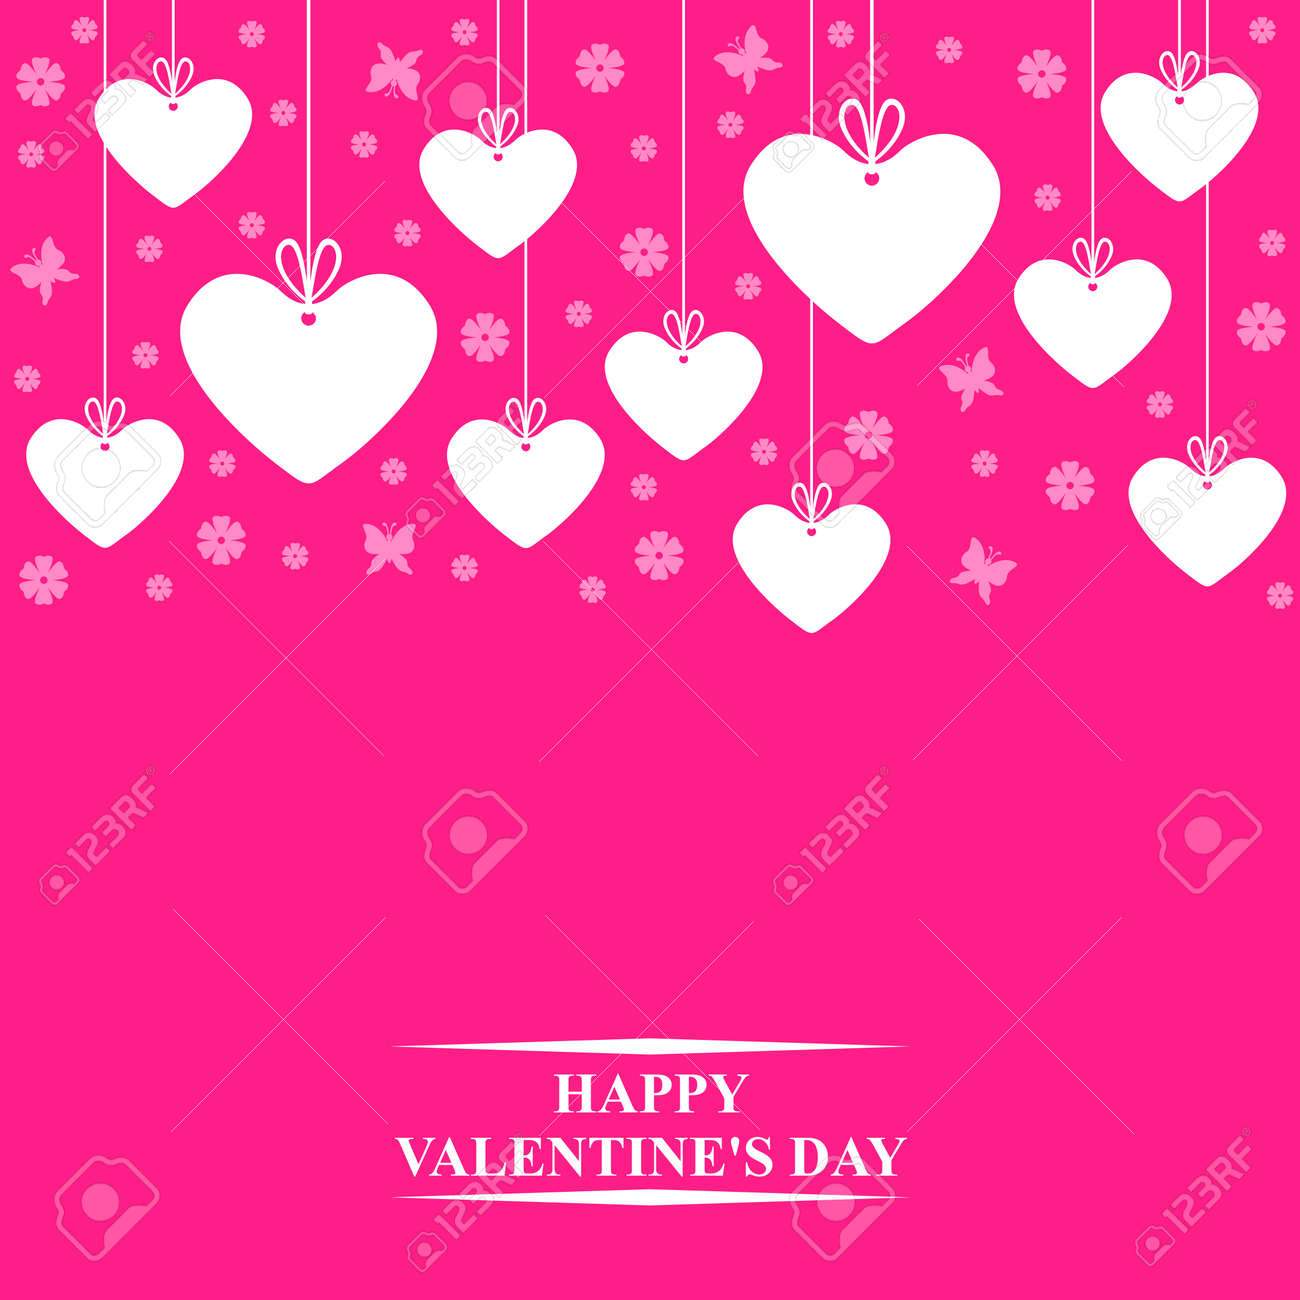 Vector Illustrations Of Valentines Day Card With Hanging Hearts